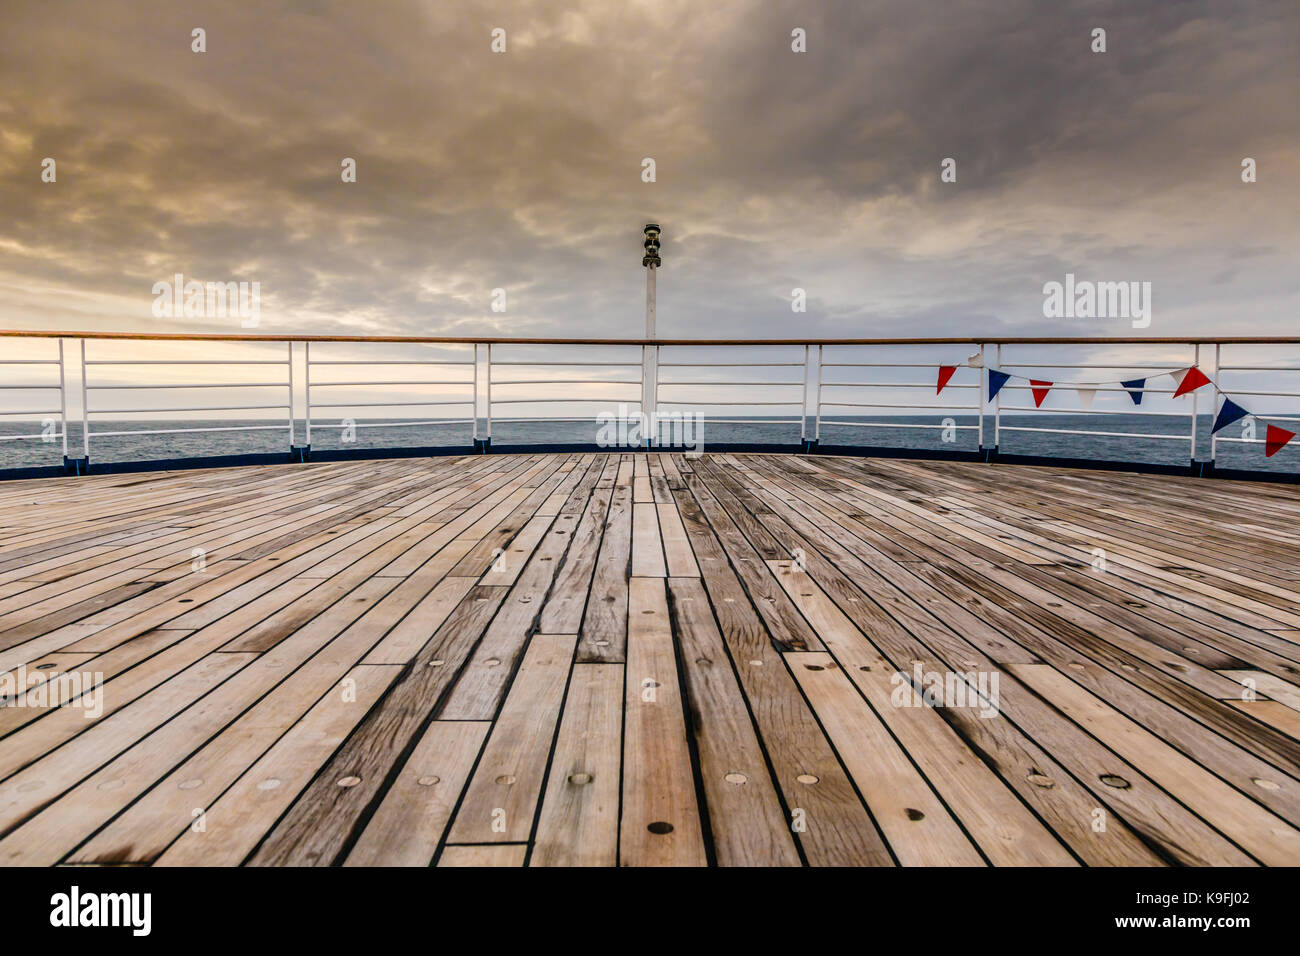 Aft deck on the MV Marco Polo - Stock Image